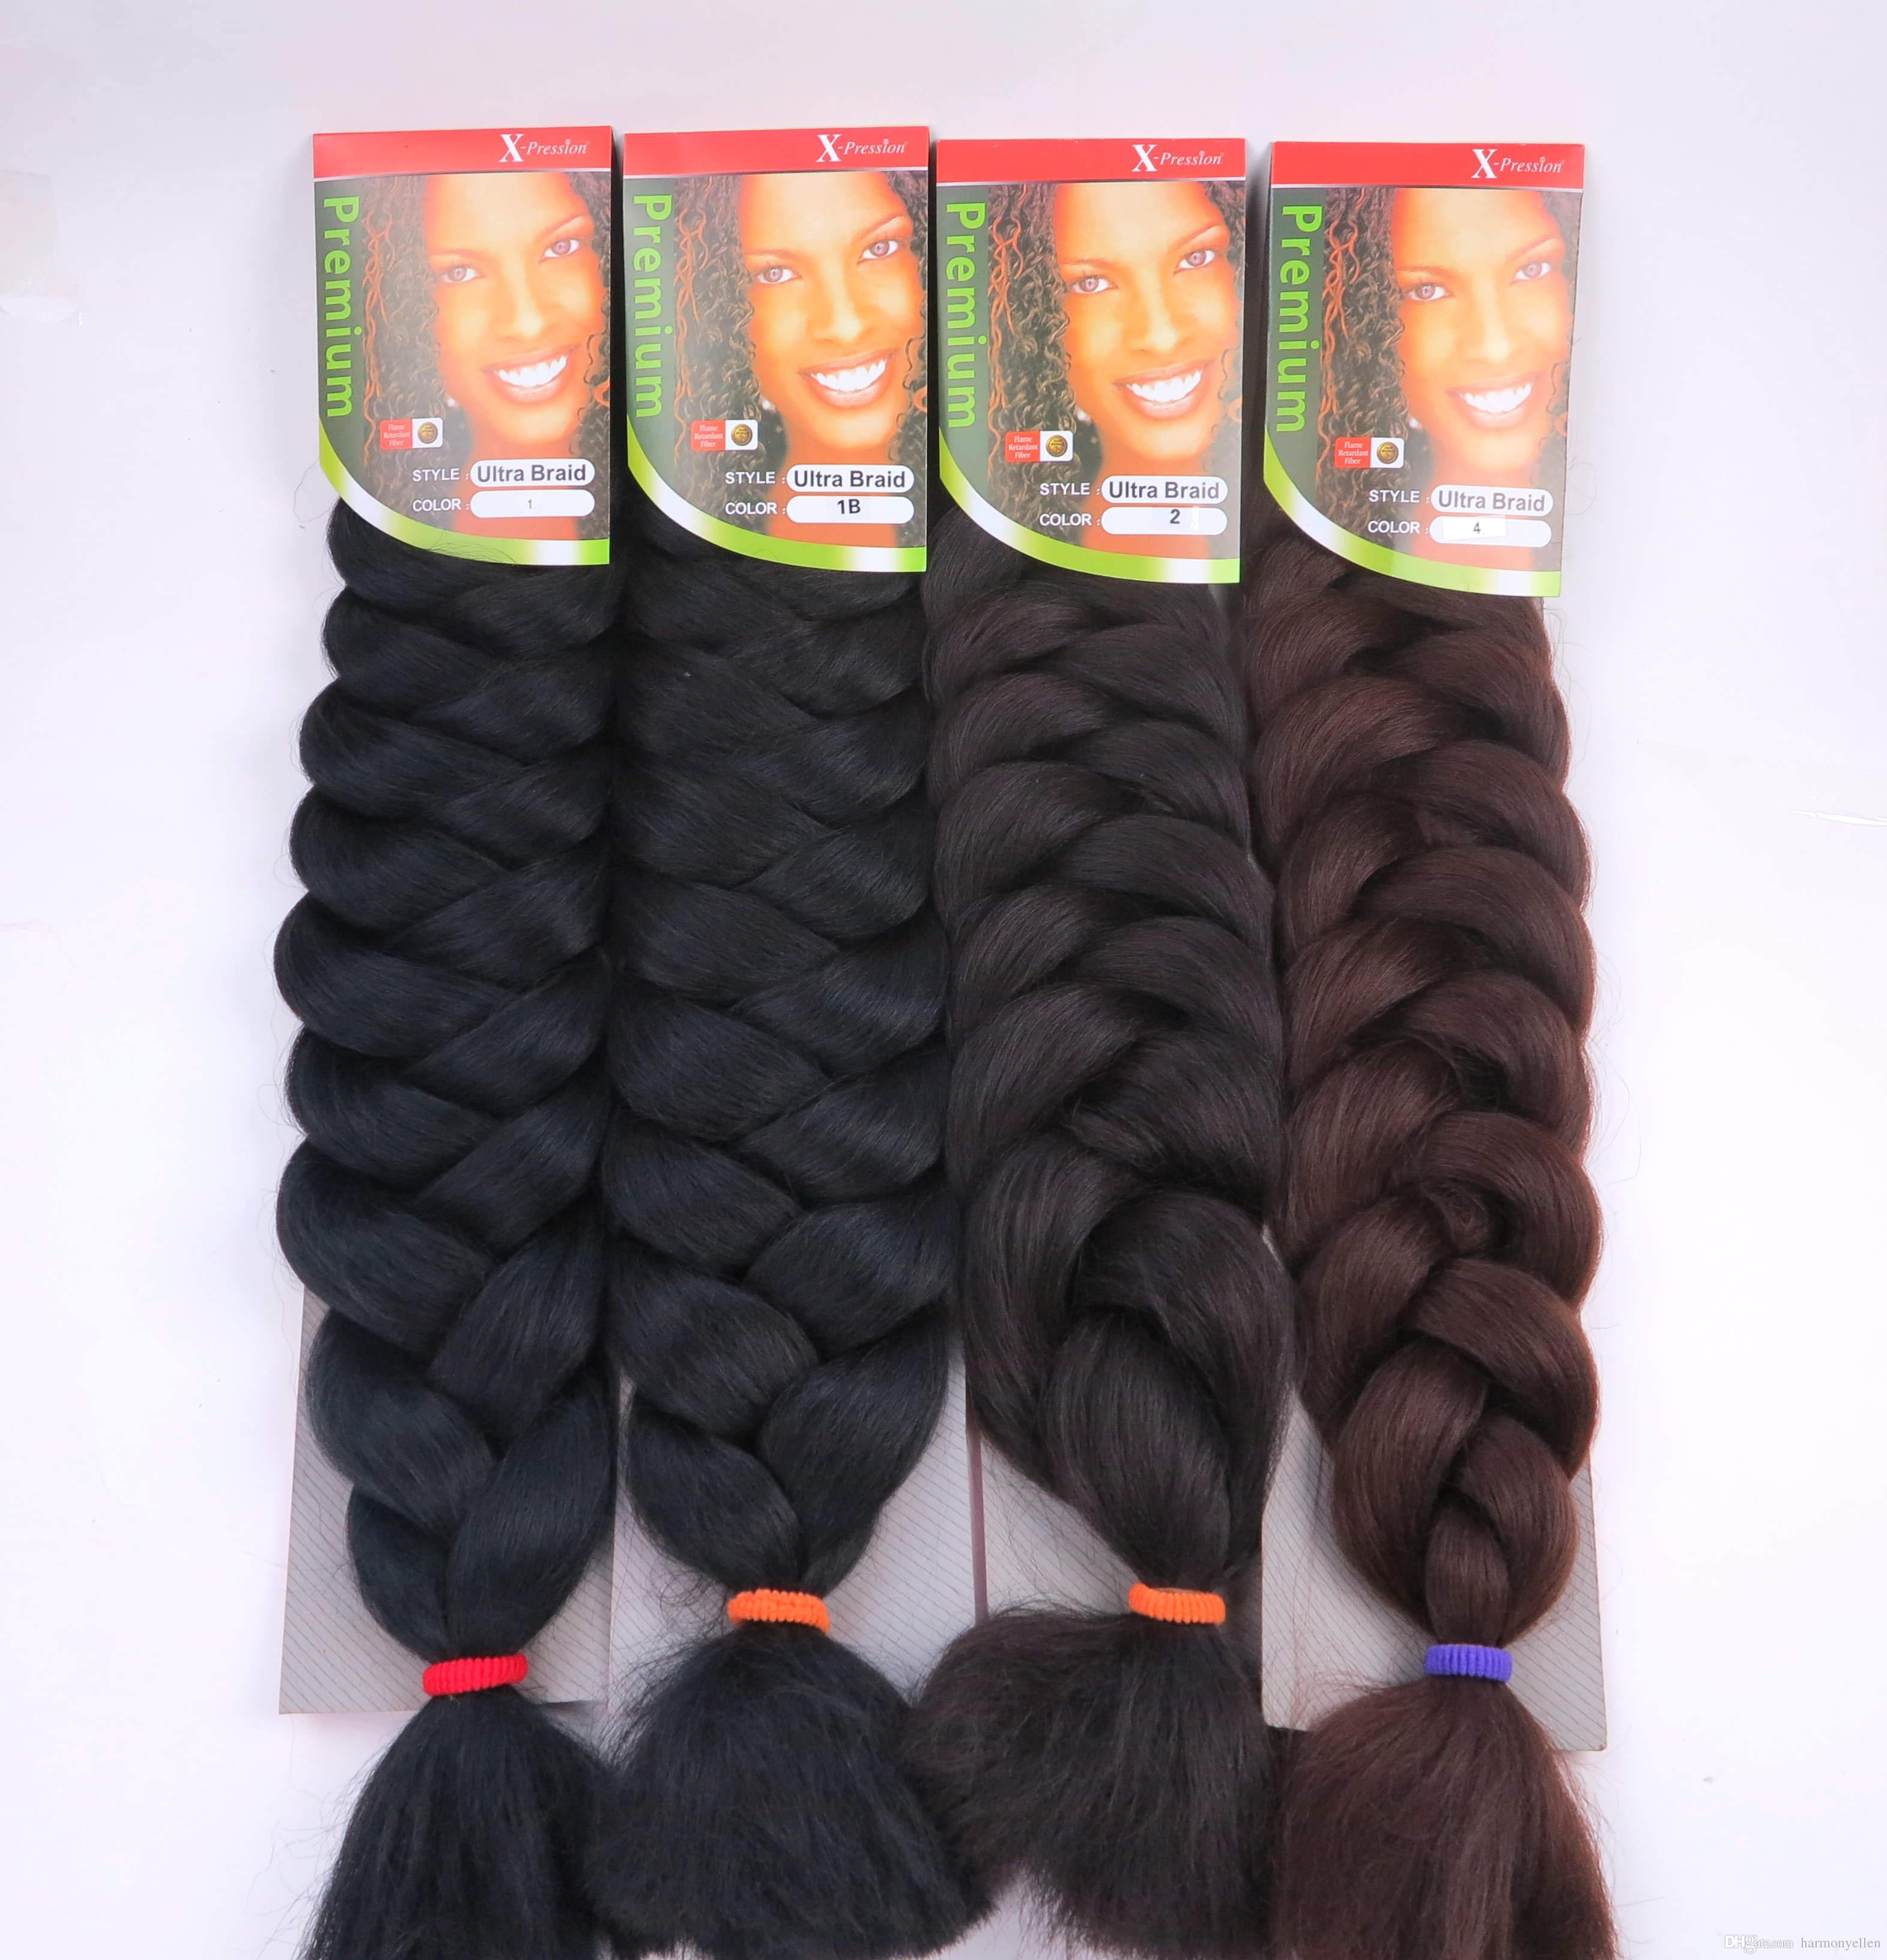 X pression ultra braids hair extensions 82 inch 165g synthetic x pression ultra braids hair extensions 82 inch 165g synthetic hair extension jumbo braid x pression hair multicolor x pression ultra braids hair extensions pmusecretfo Gallery